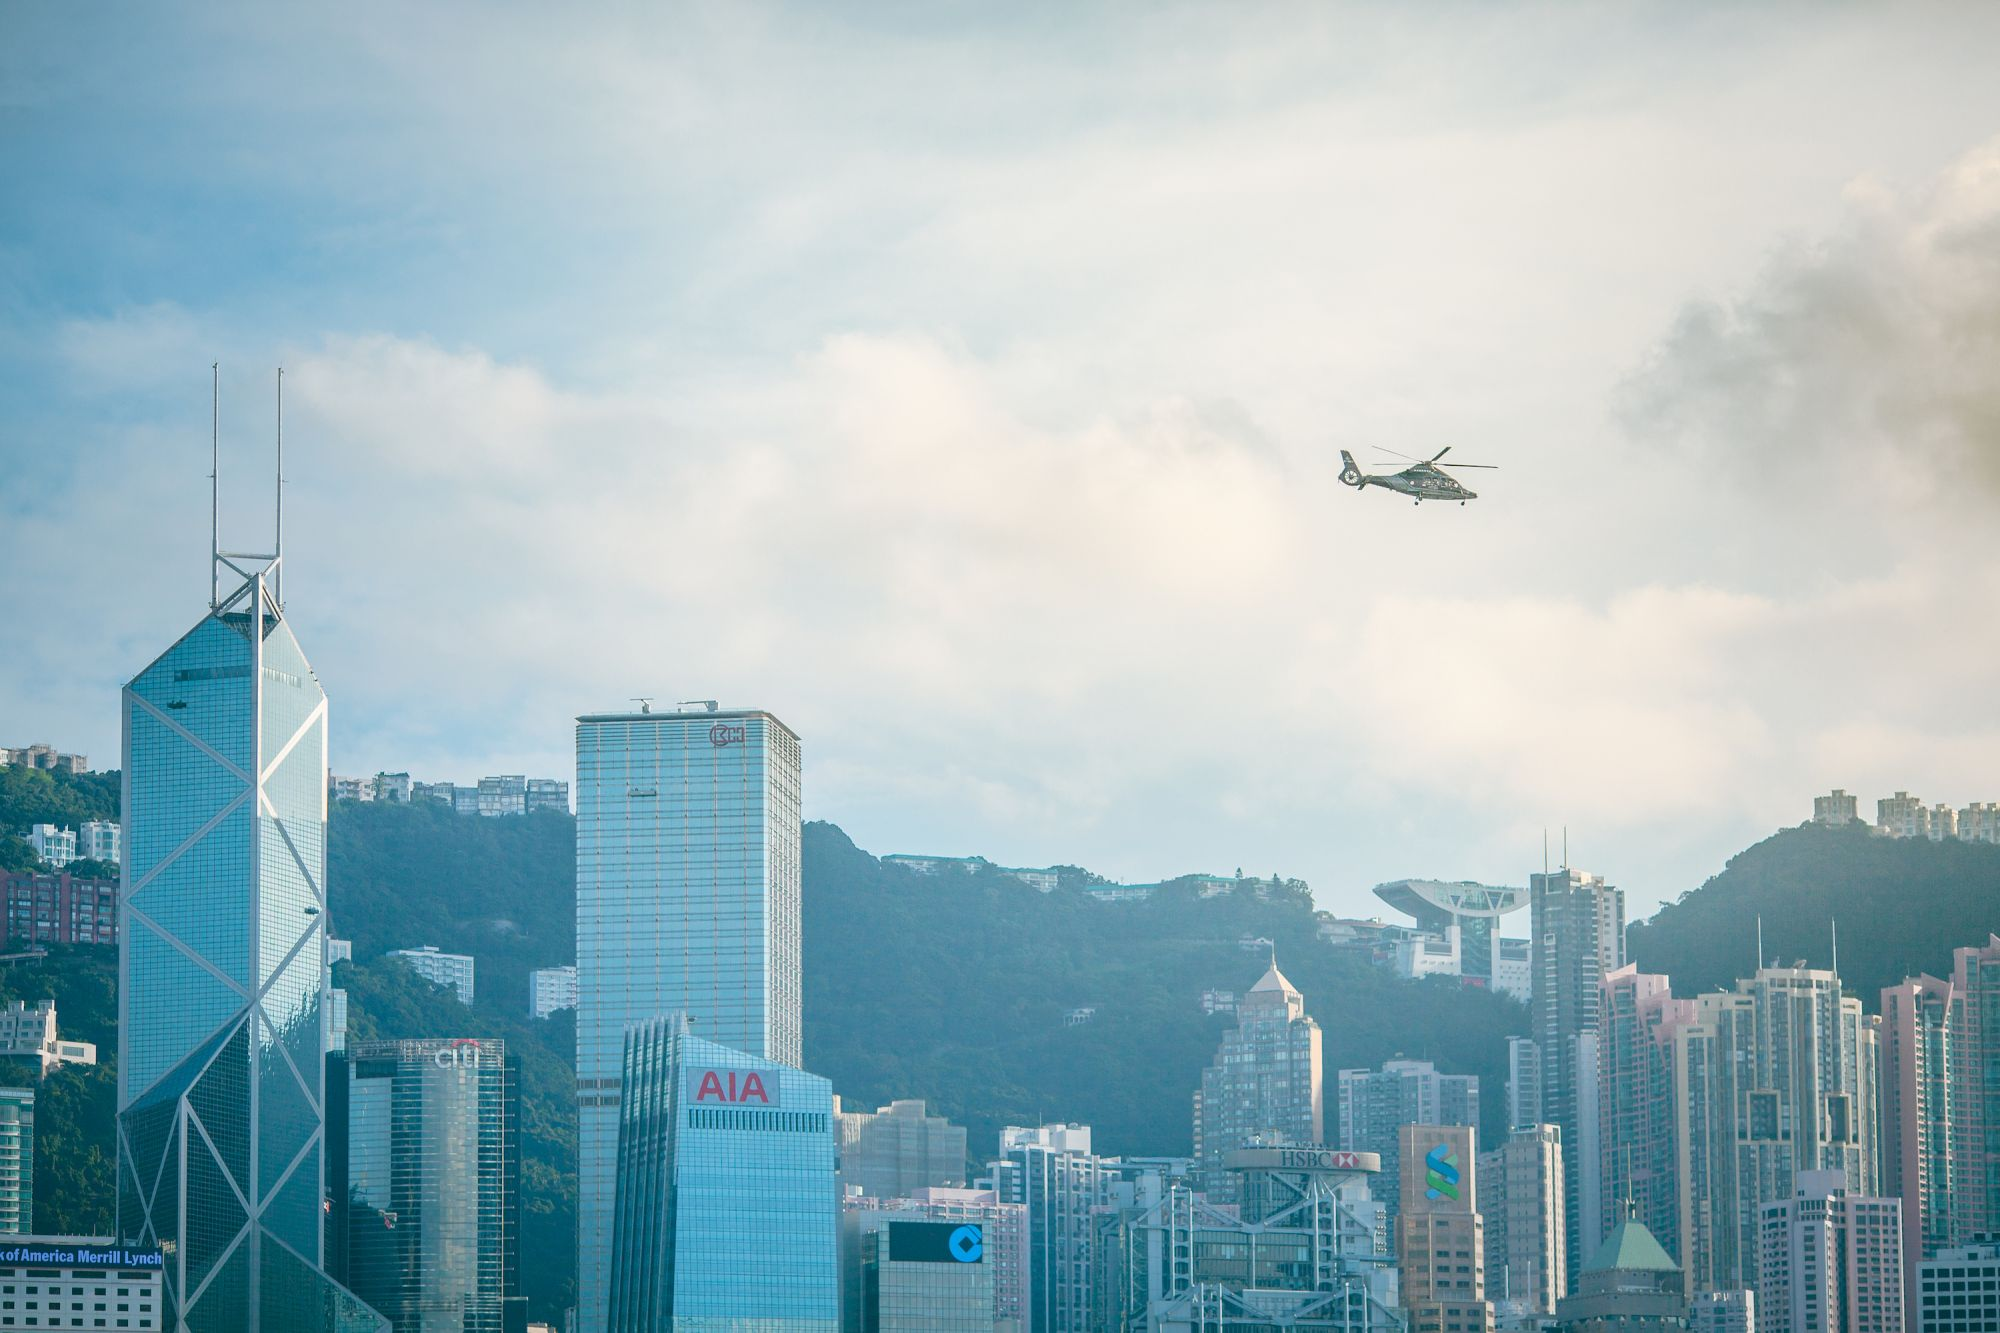 Helicopter flying over Hong Kong city skyline on a bright clear day.